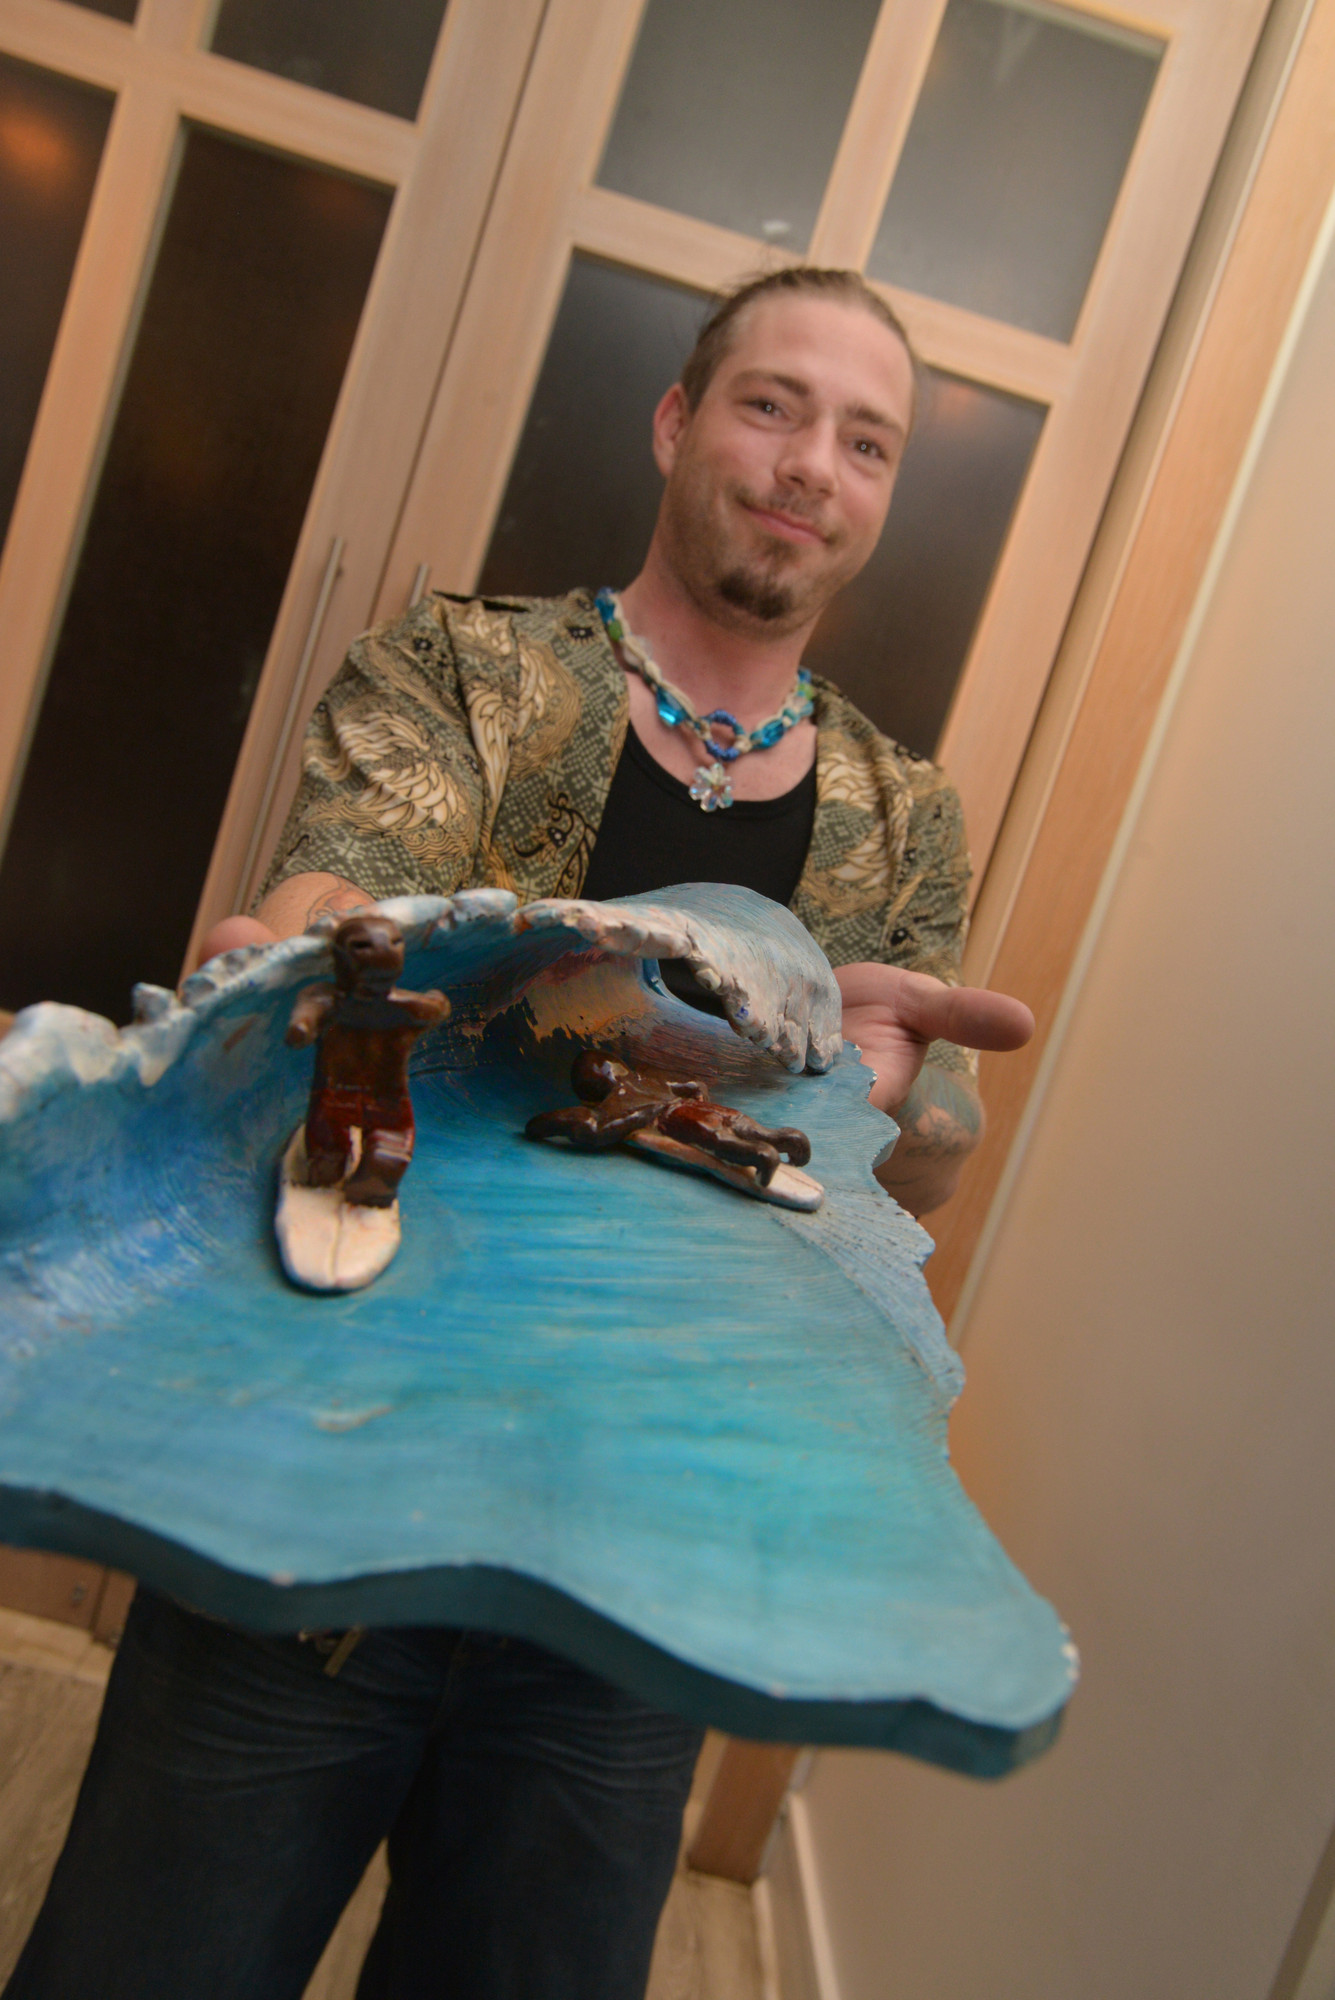 Phillip Eubanks displayed his sculpture at the Surf Week art show at the Allegria.